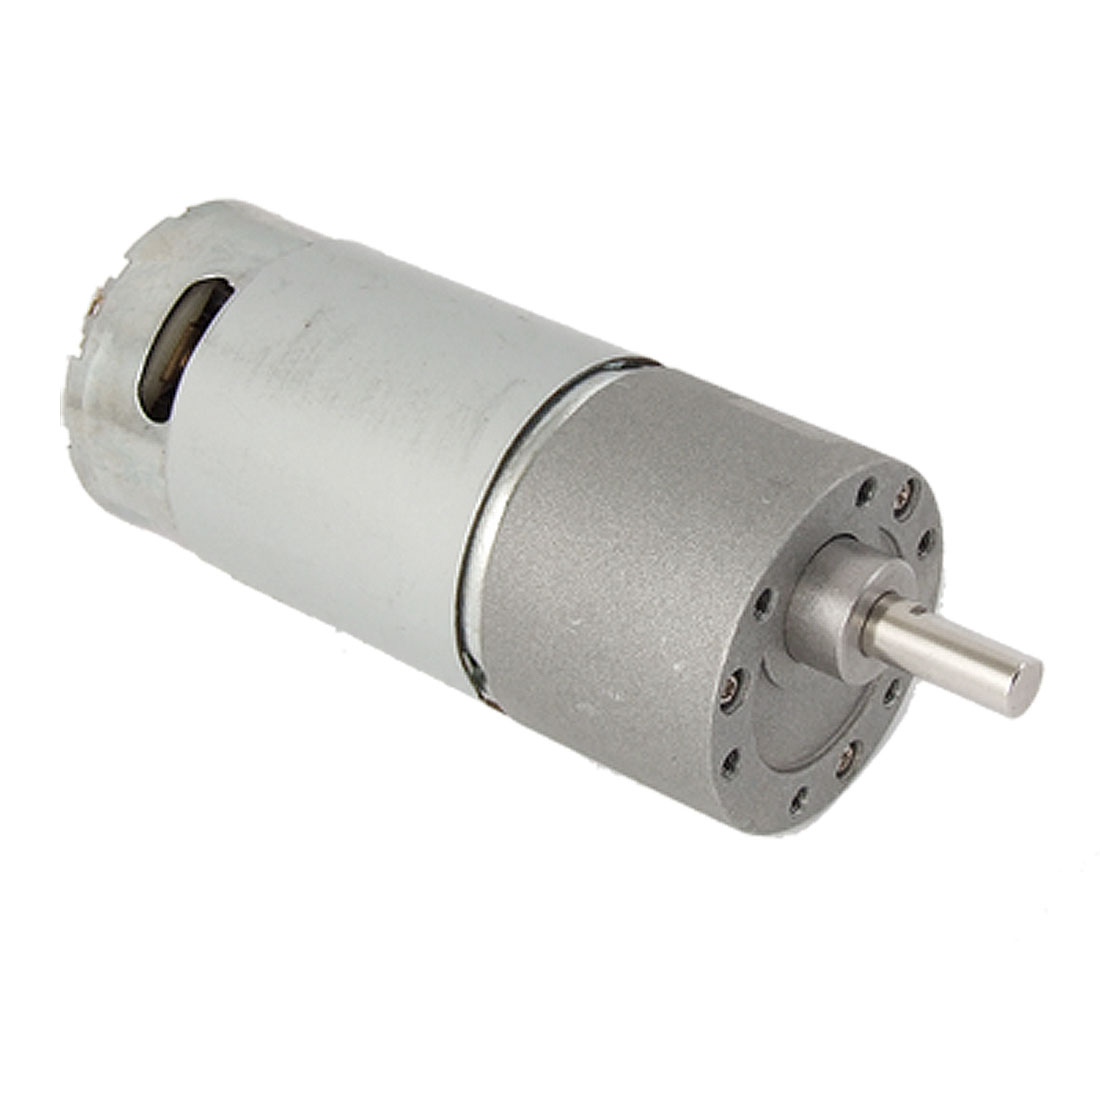 37mm Diameter 30RPM Output Speed 12V 0.1A DC Geared Motor